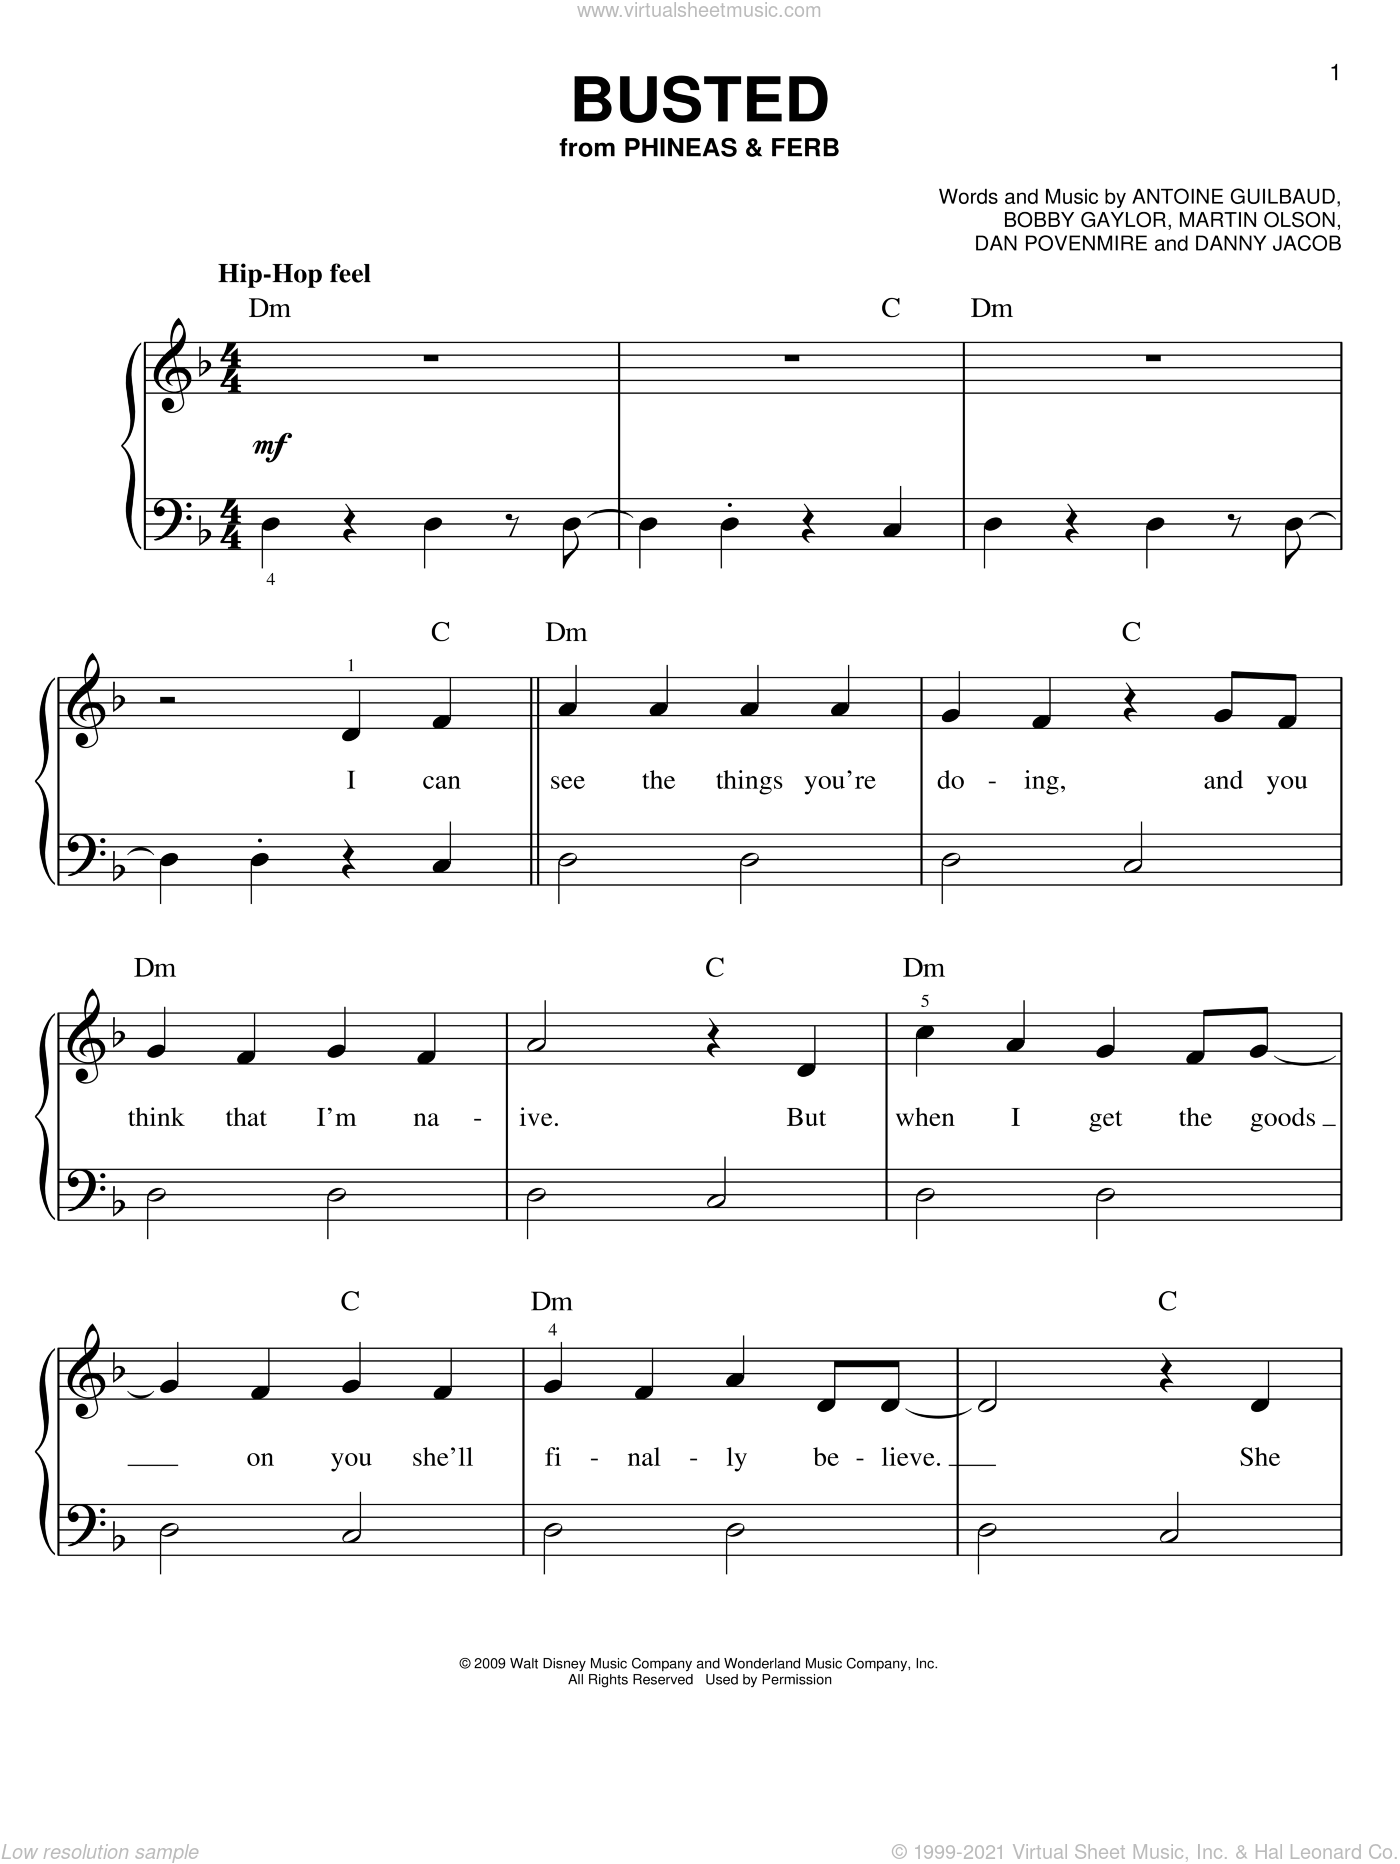 Busted sheet music for piano solo by Danny Jacob, Phineas And Ferb, Antoine Guilbaud, Bobby Gaylor, Dan Povenmire and Martin Olson, easy skill level